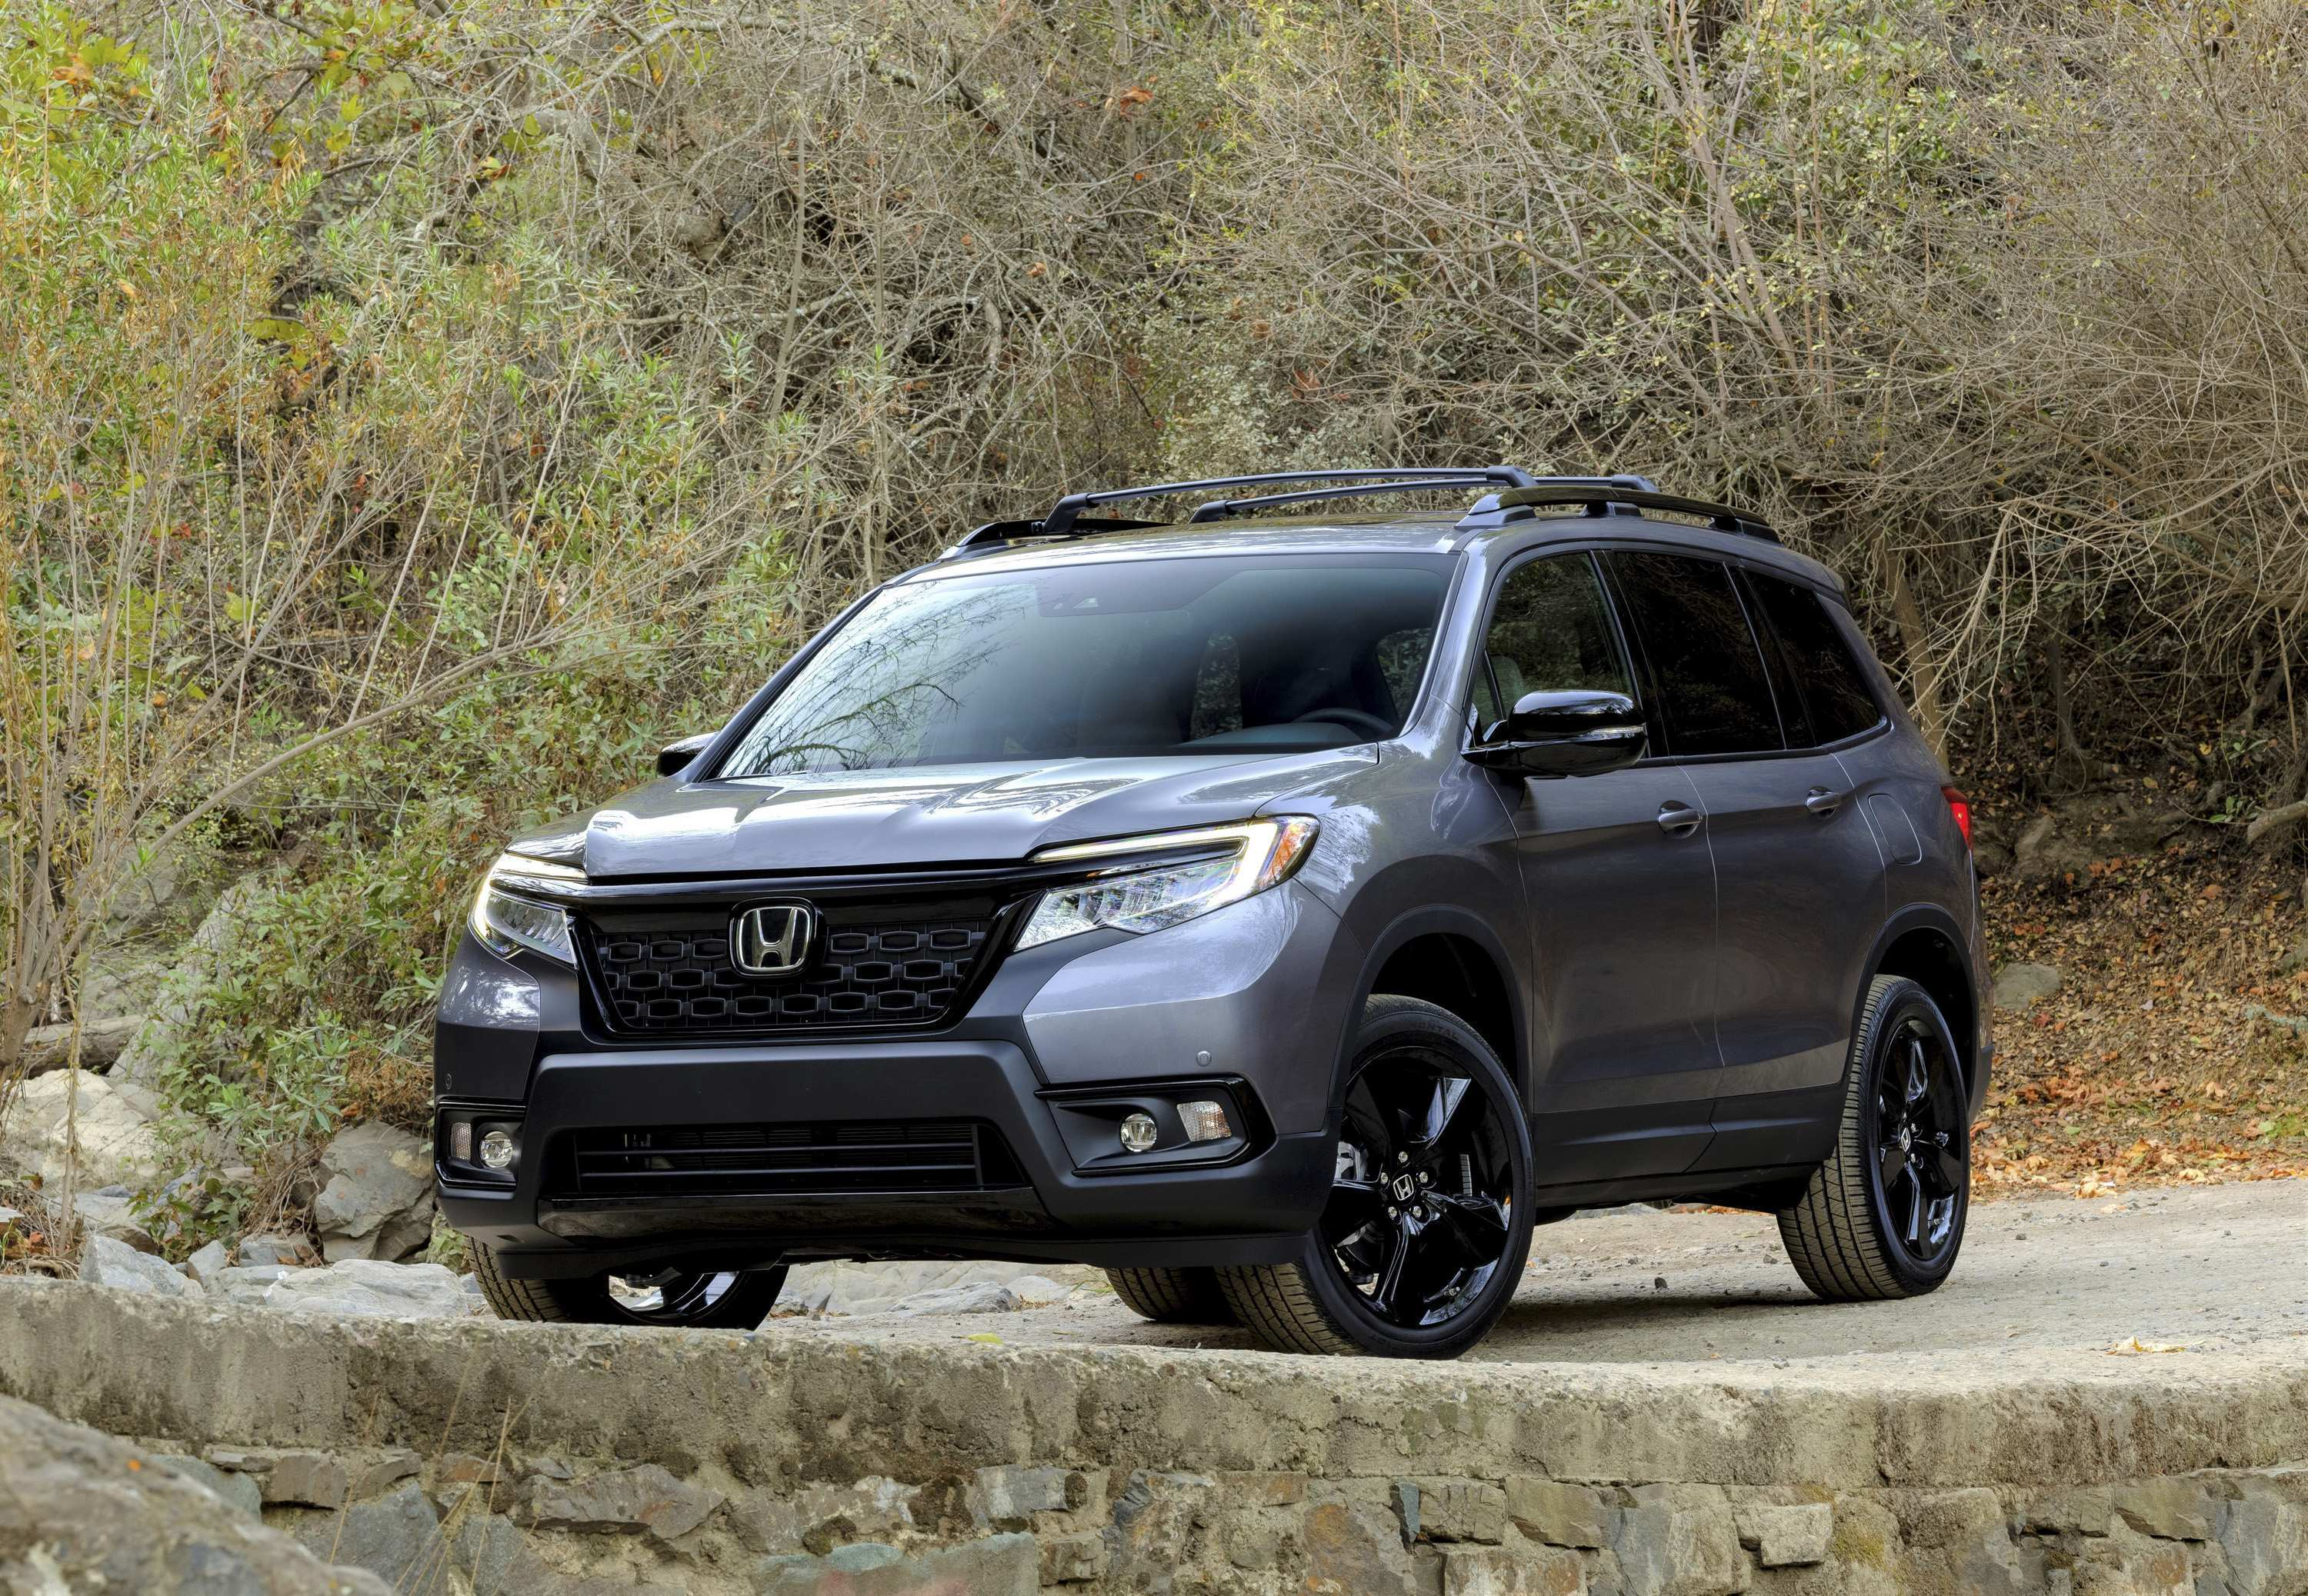 59 New 2019 Honda Passport Reviews Interior by 2019 Honda Passport Reviews